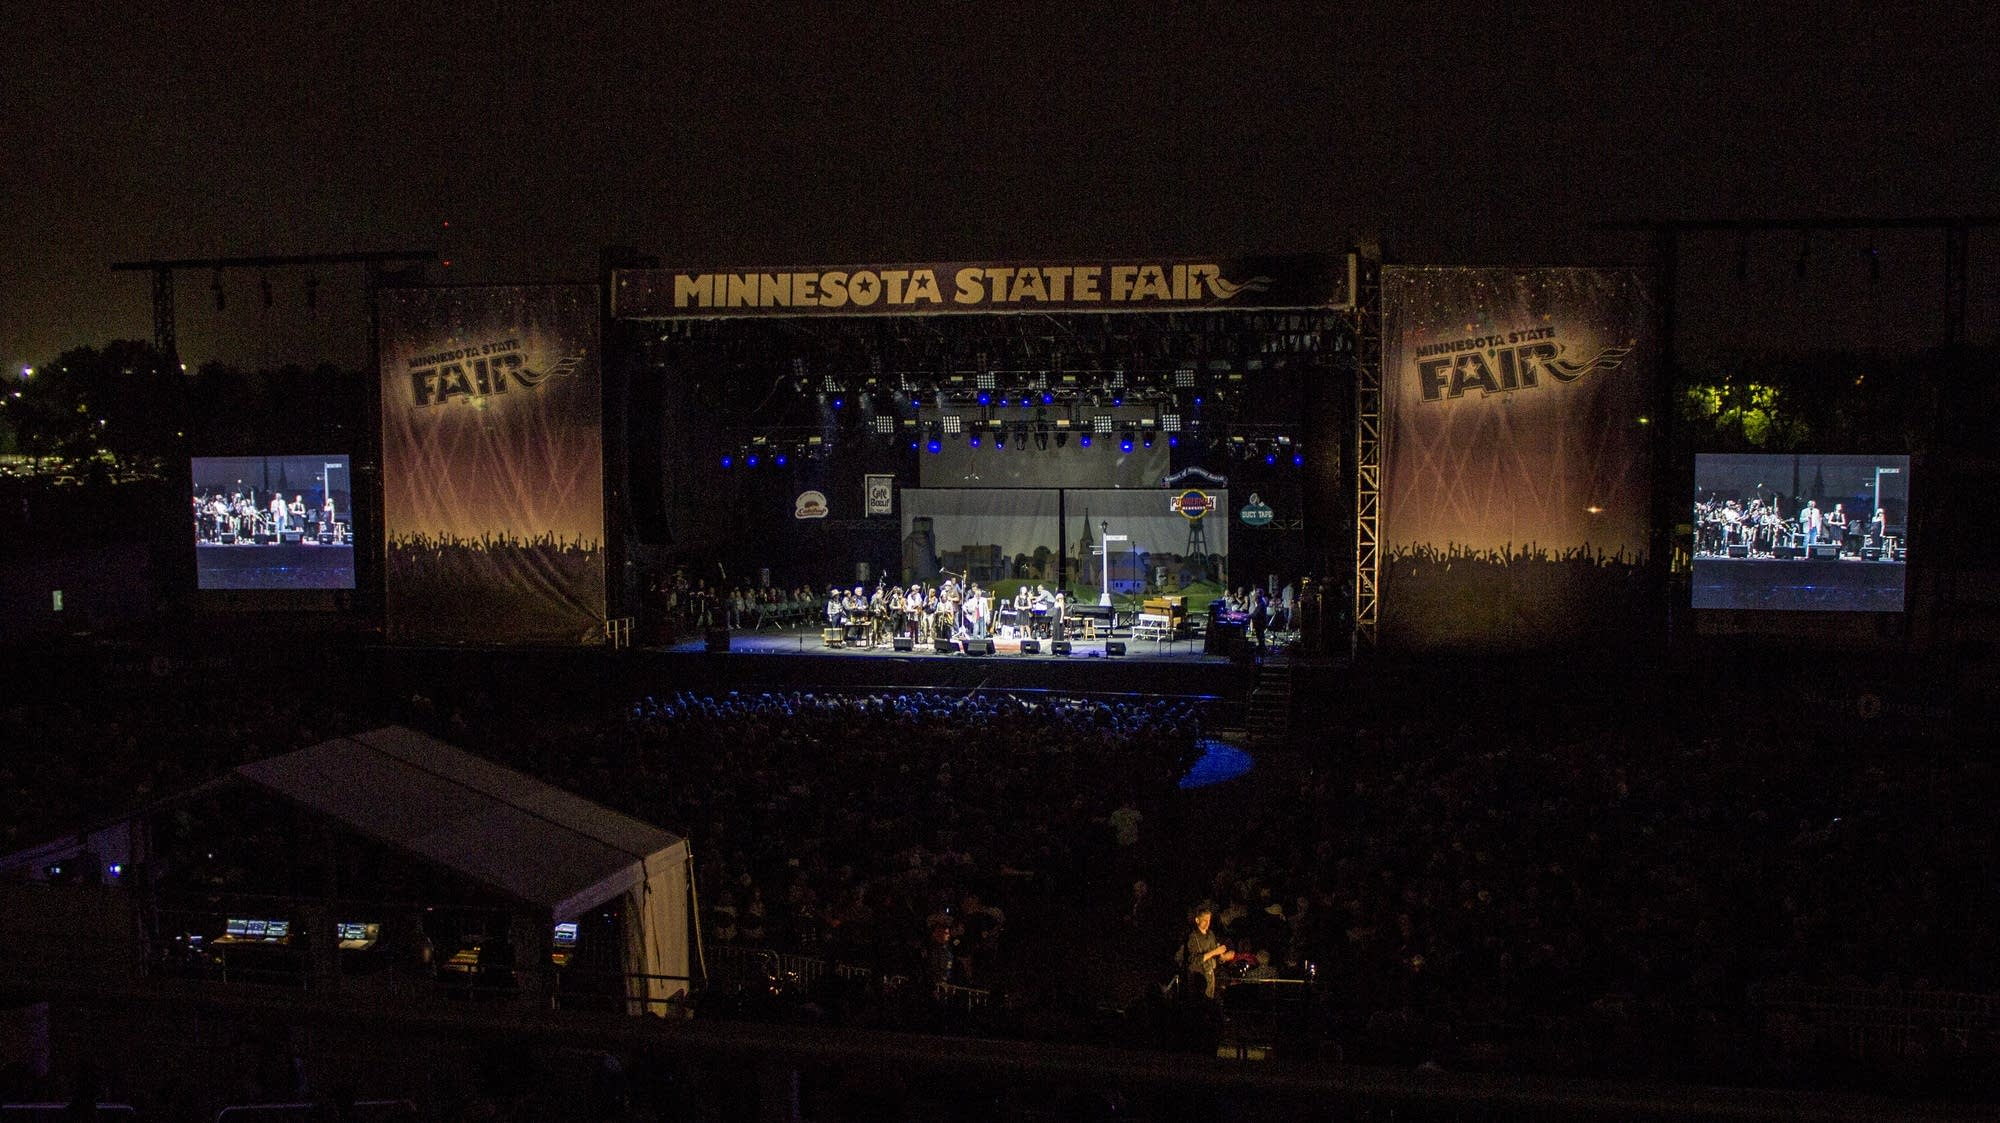 The Minnesota State Fair Grandstand